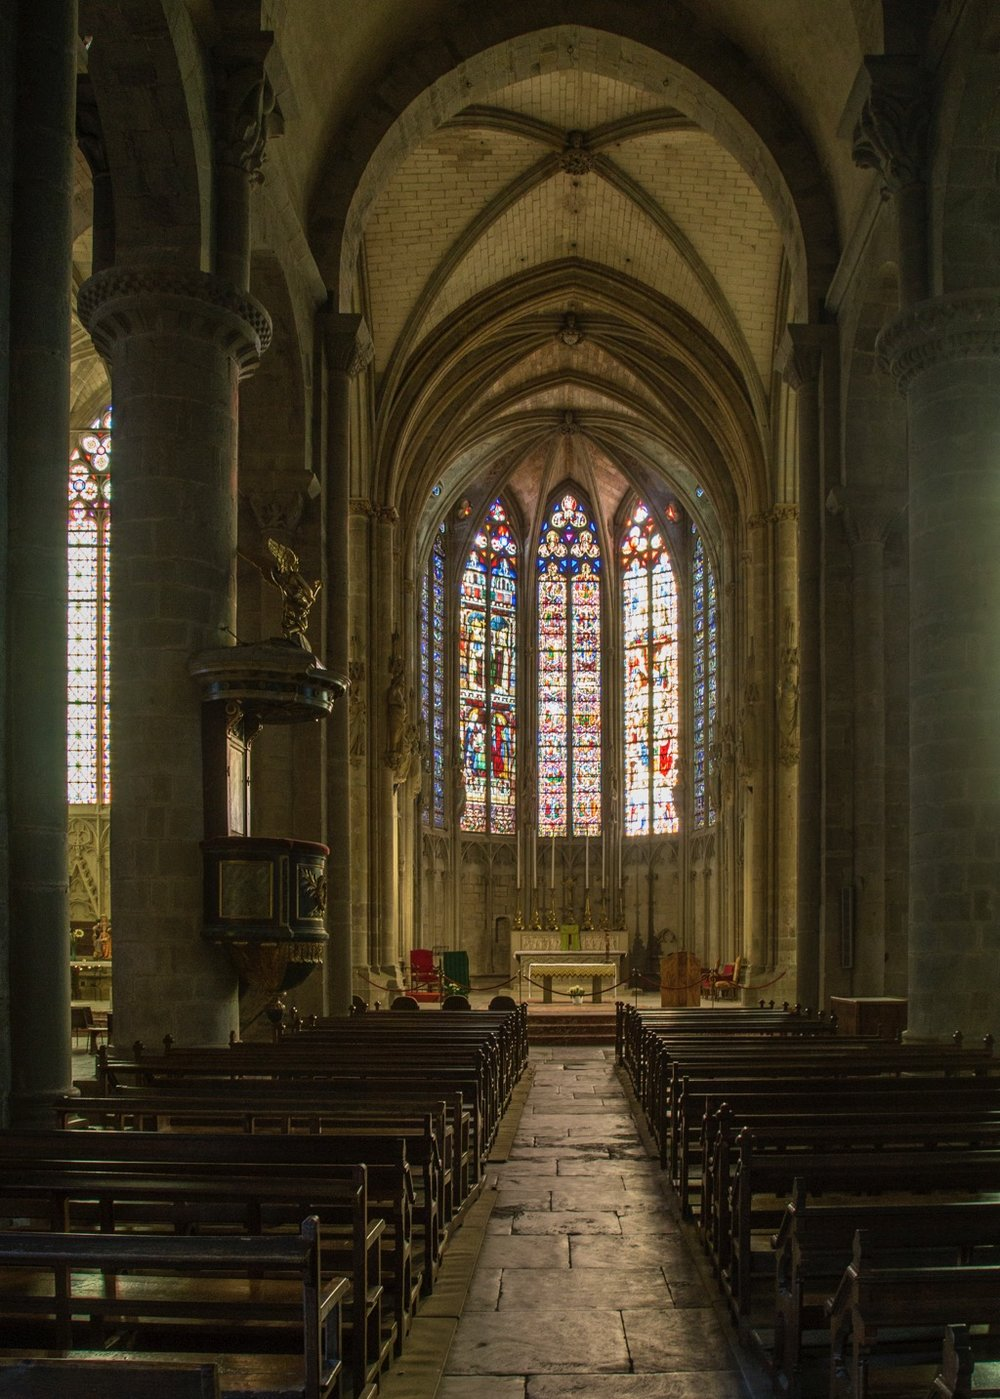 The Basilica of Saint-Nazaire with its amazing stained glass windows.